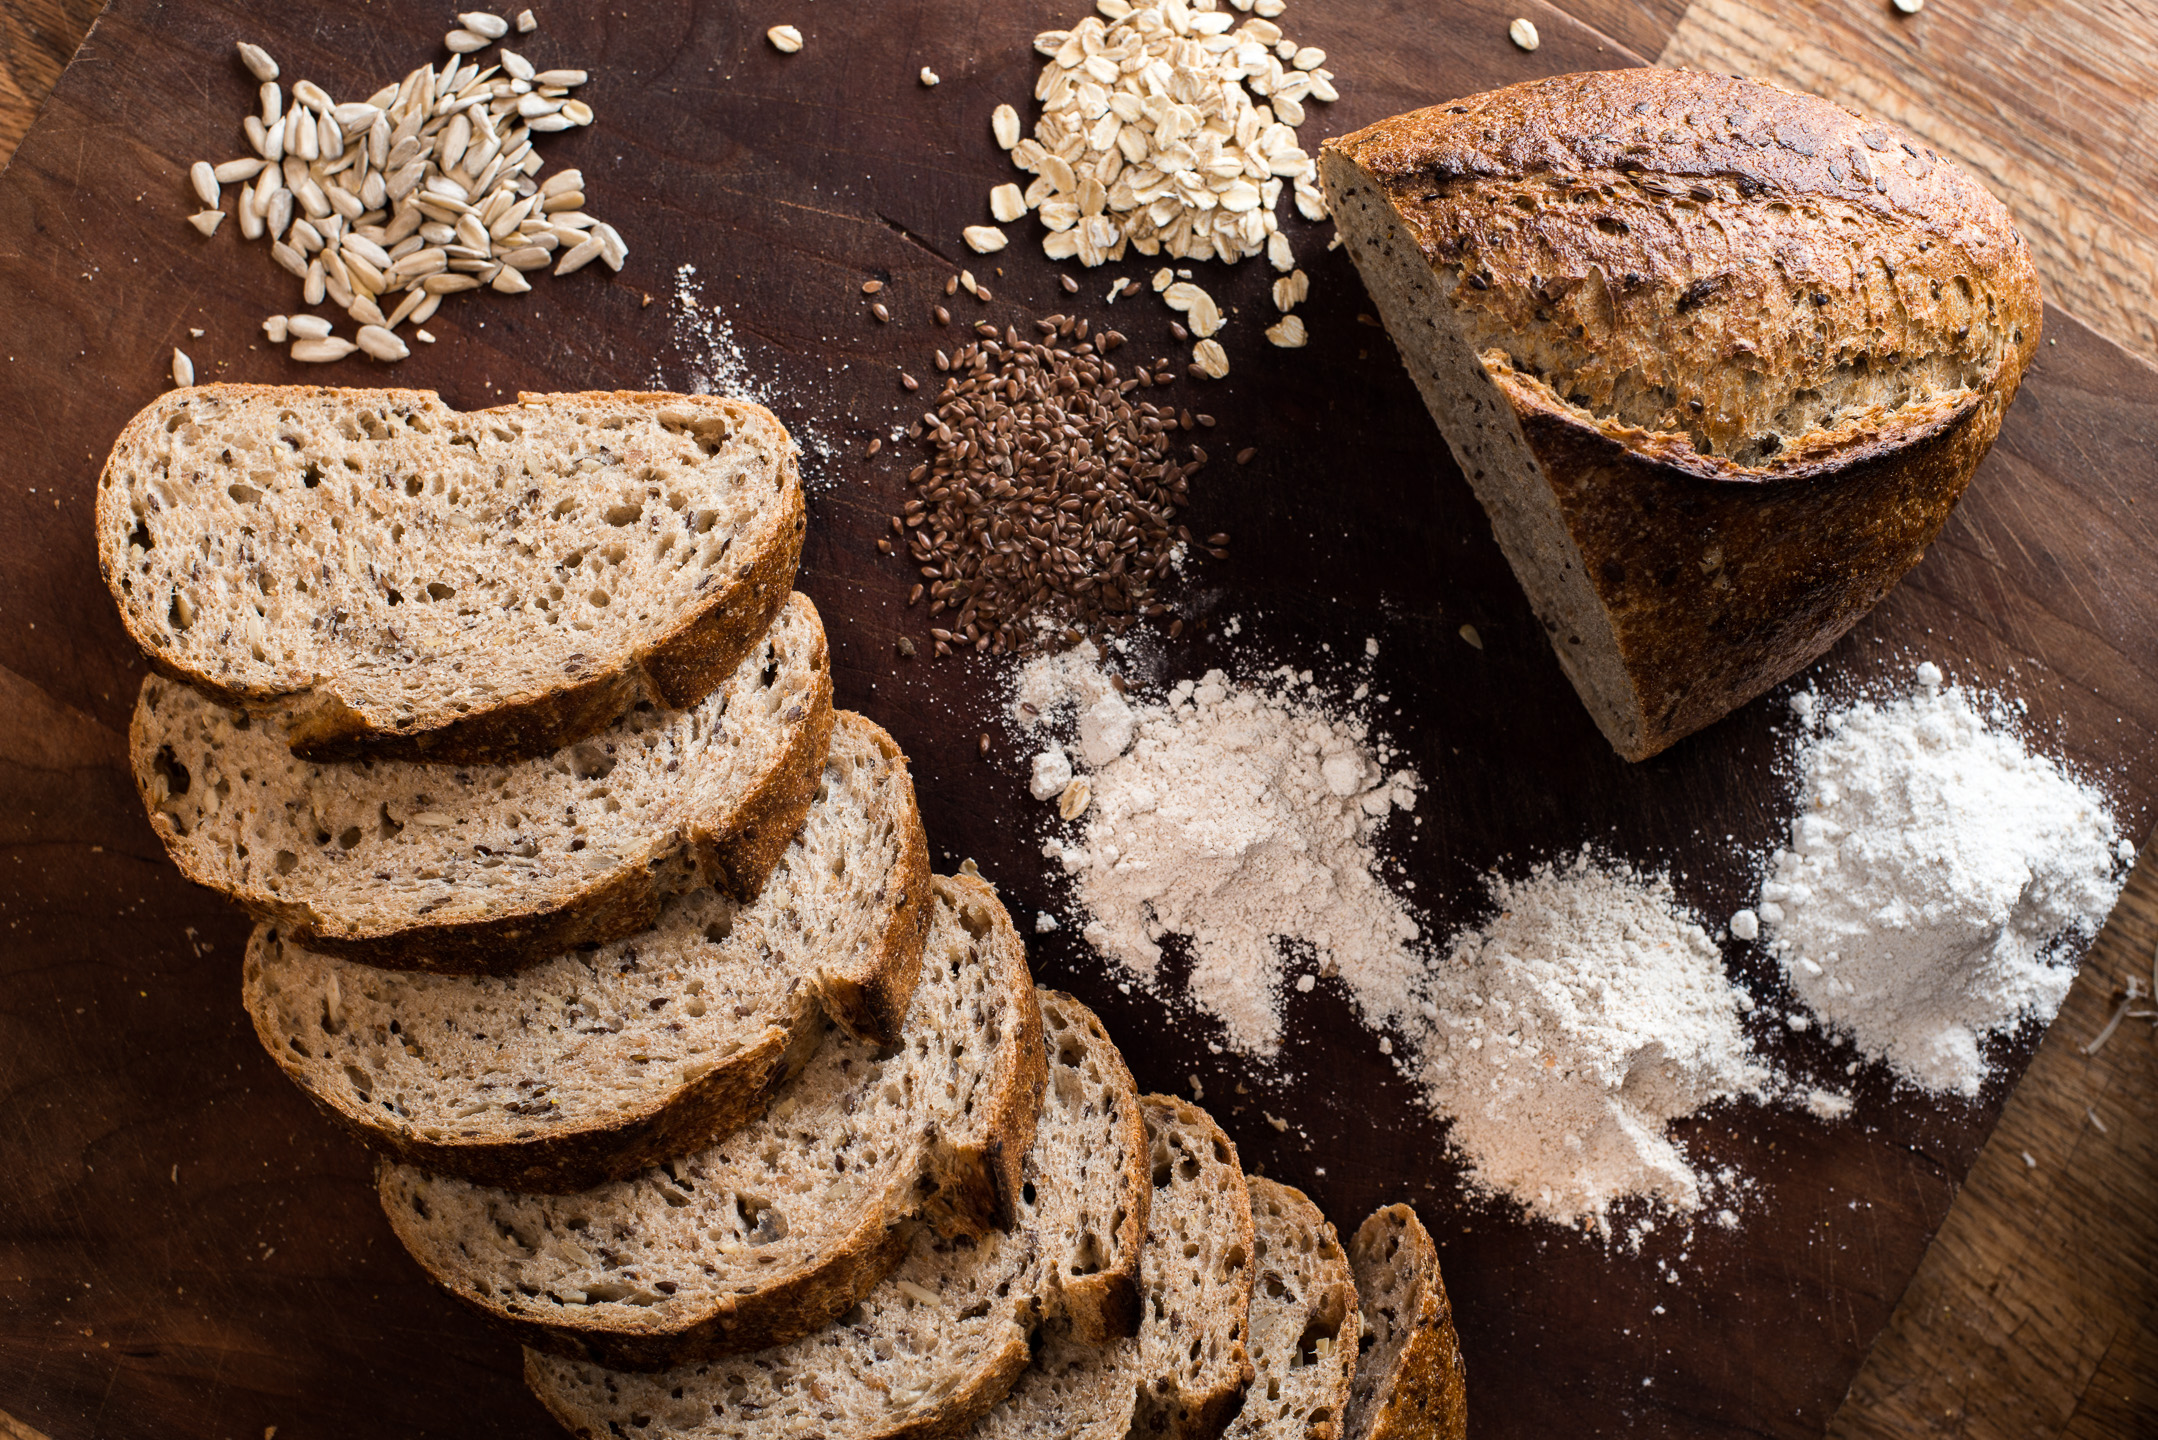 jeeheon-commercial-food-bread-001-2.jpg